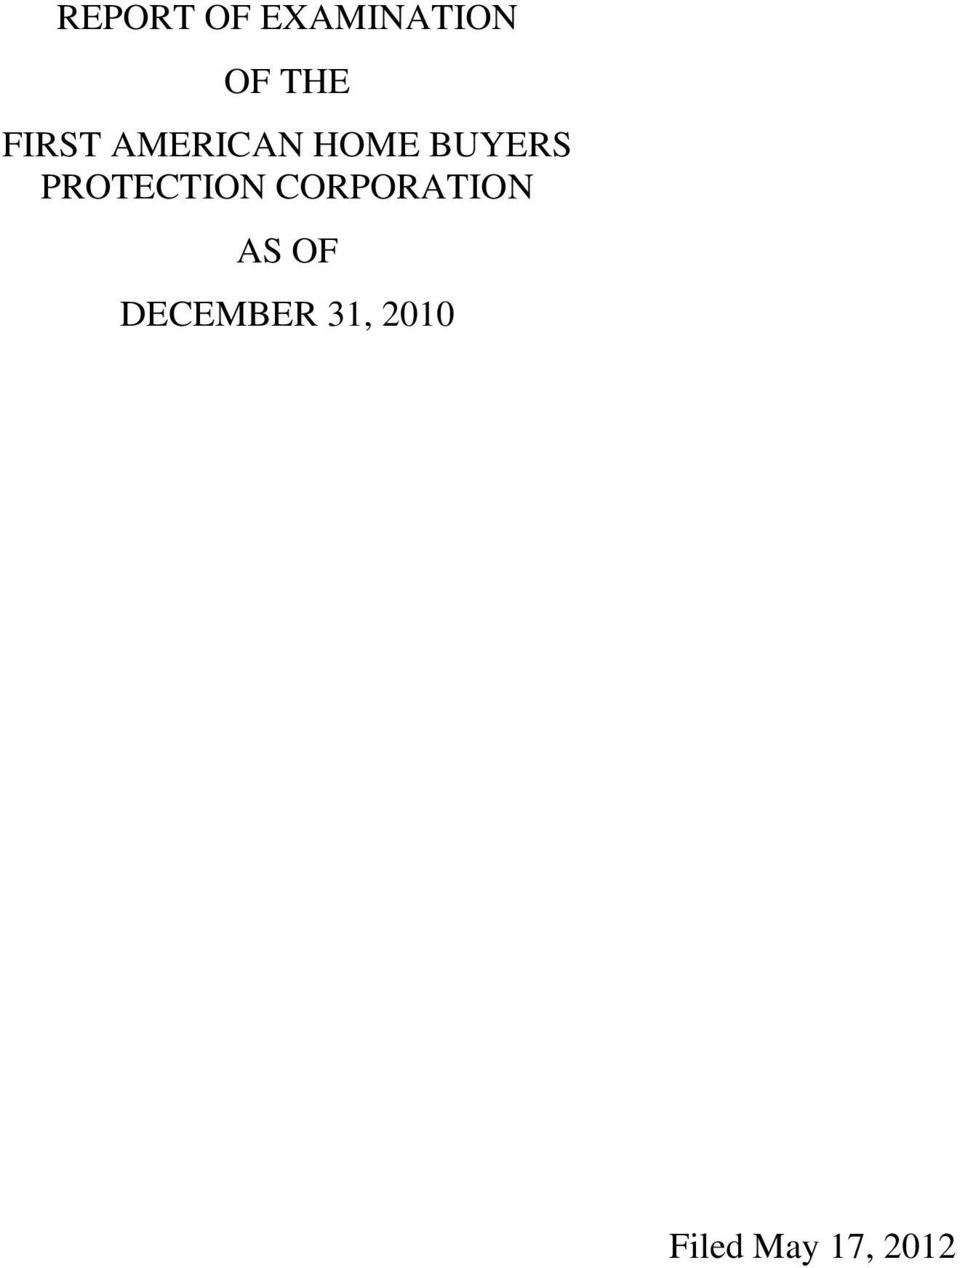 PROTECTION CORPORATION AS OF